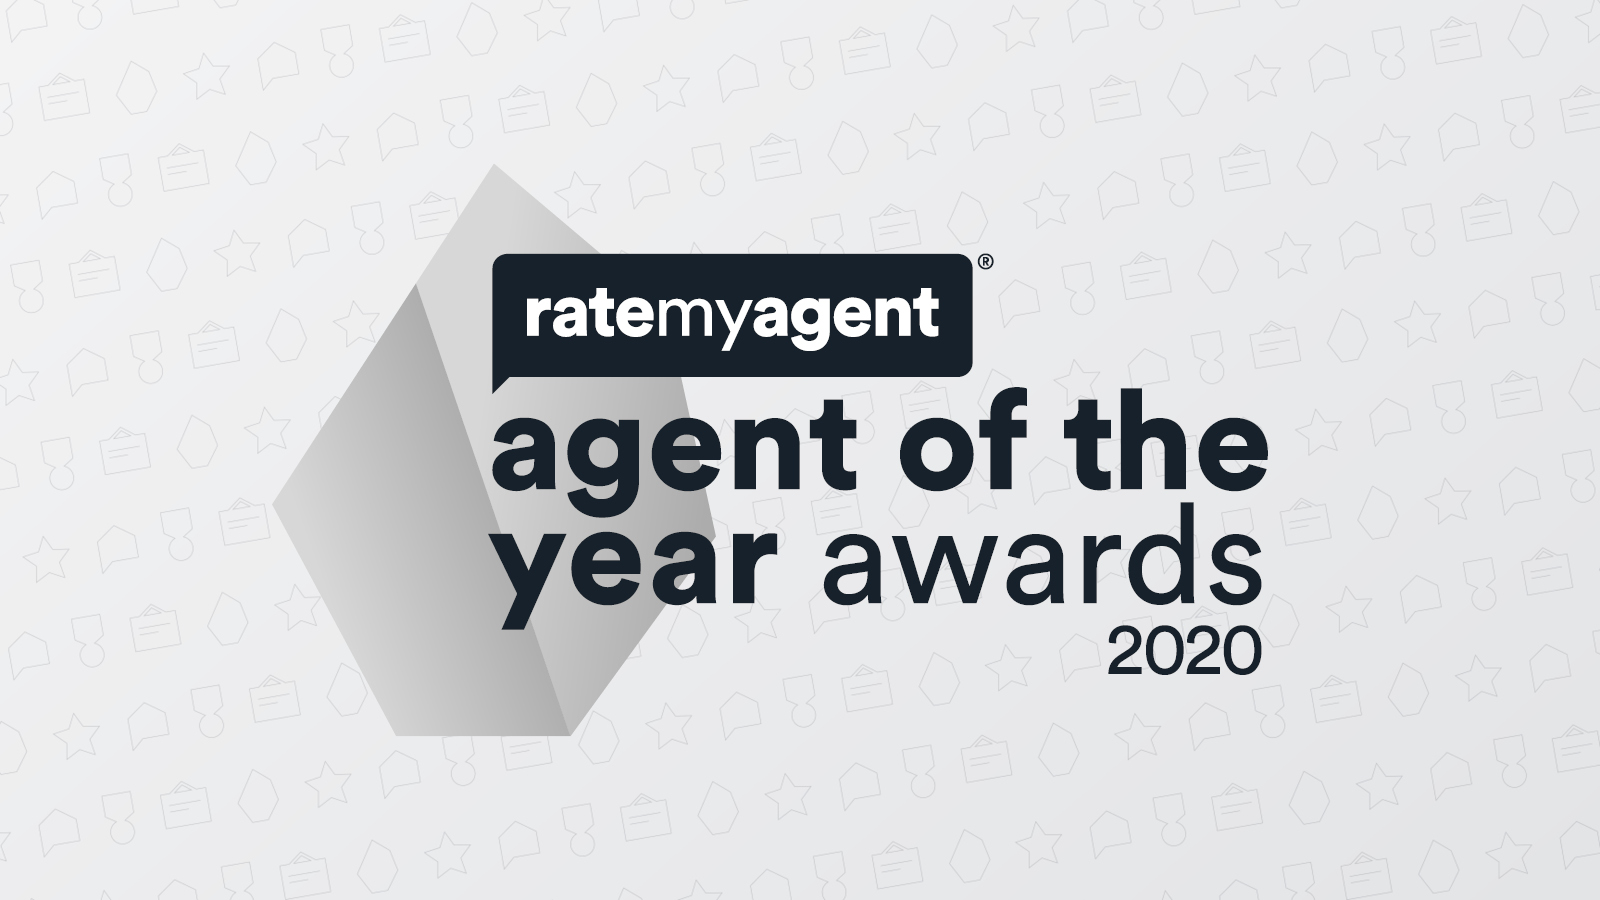 Award Assets | RateMyAgent 2020 Agent of the Year Awards